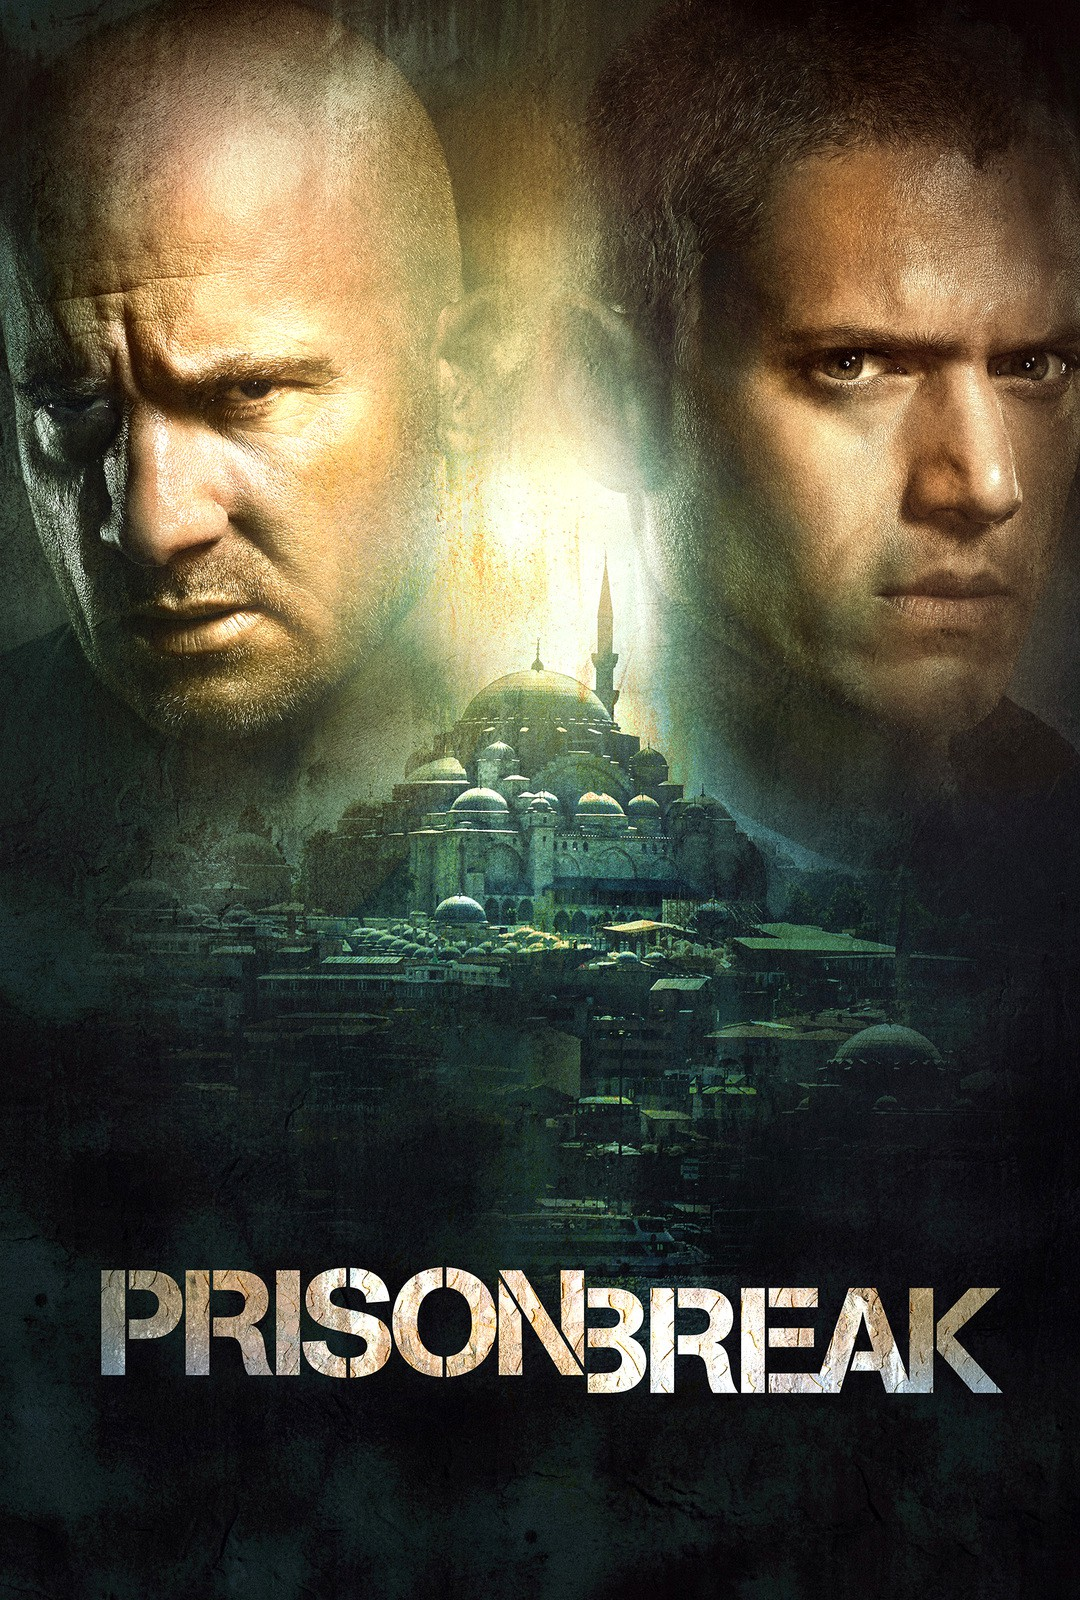 prison break staffel 1 folge 2